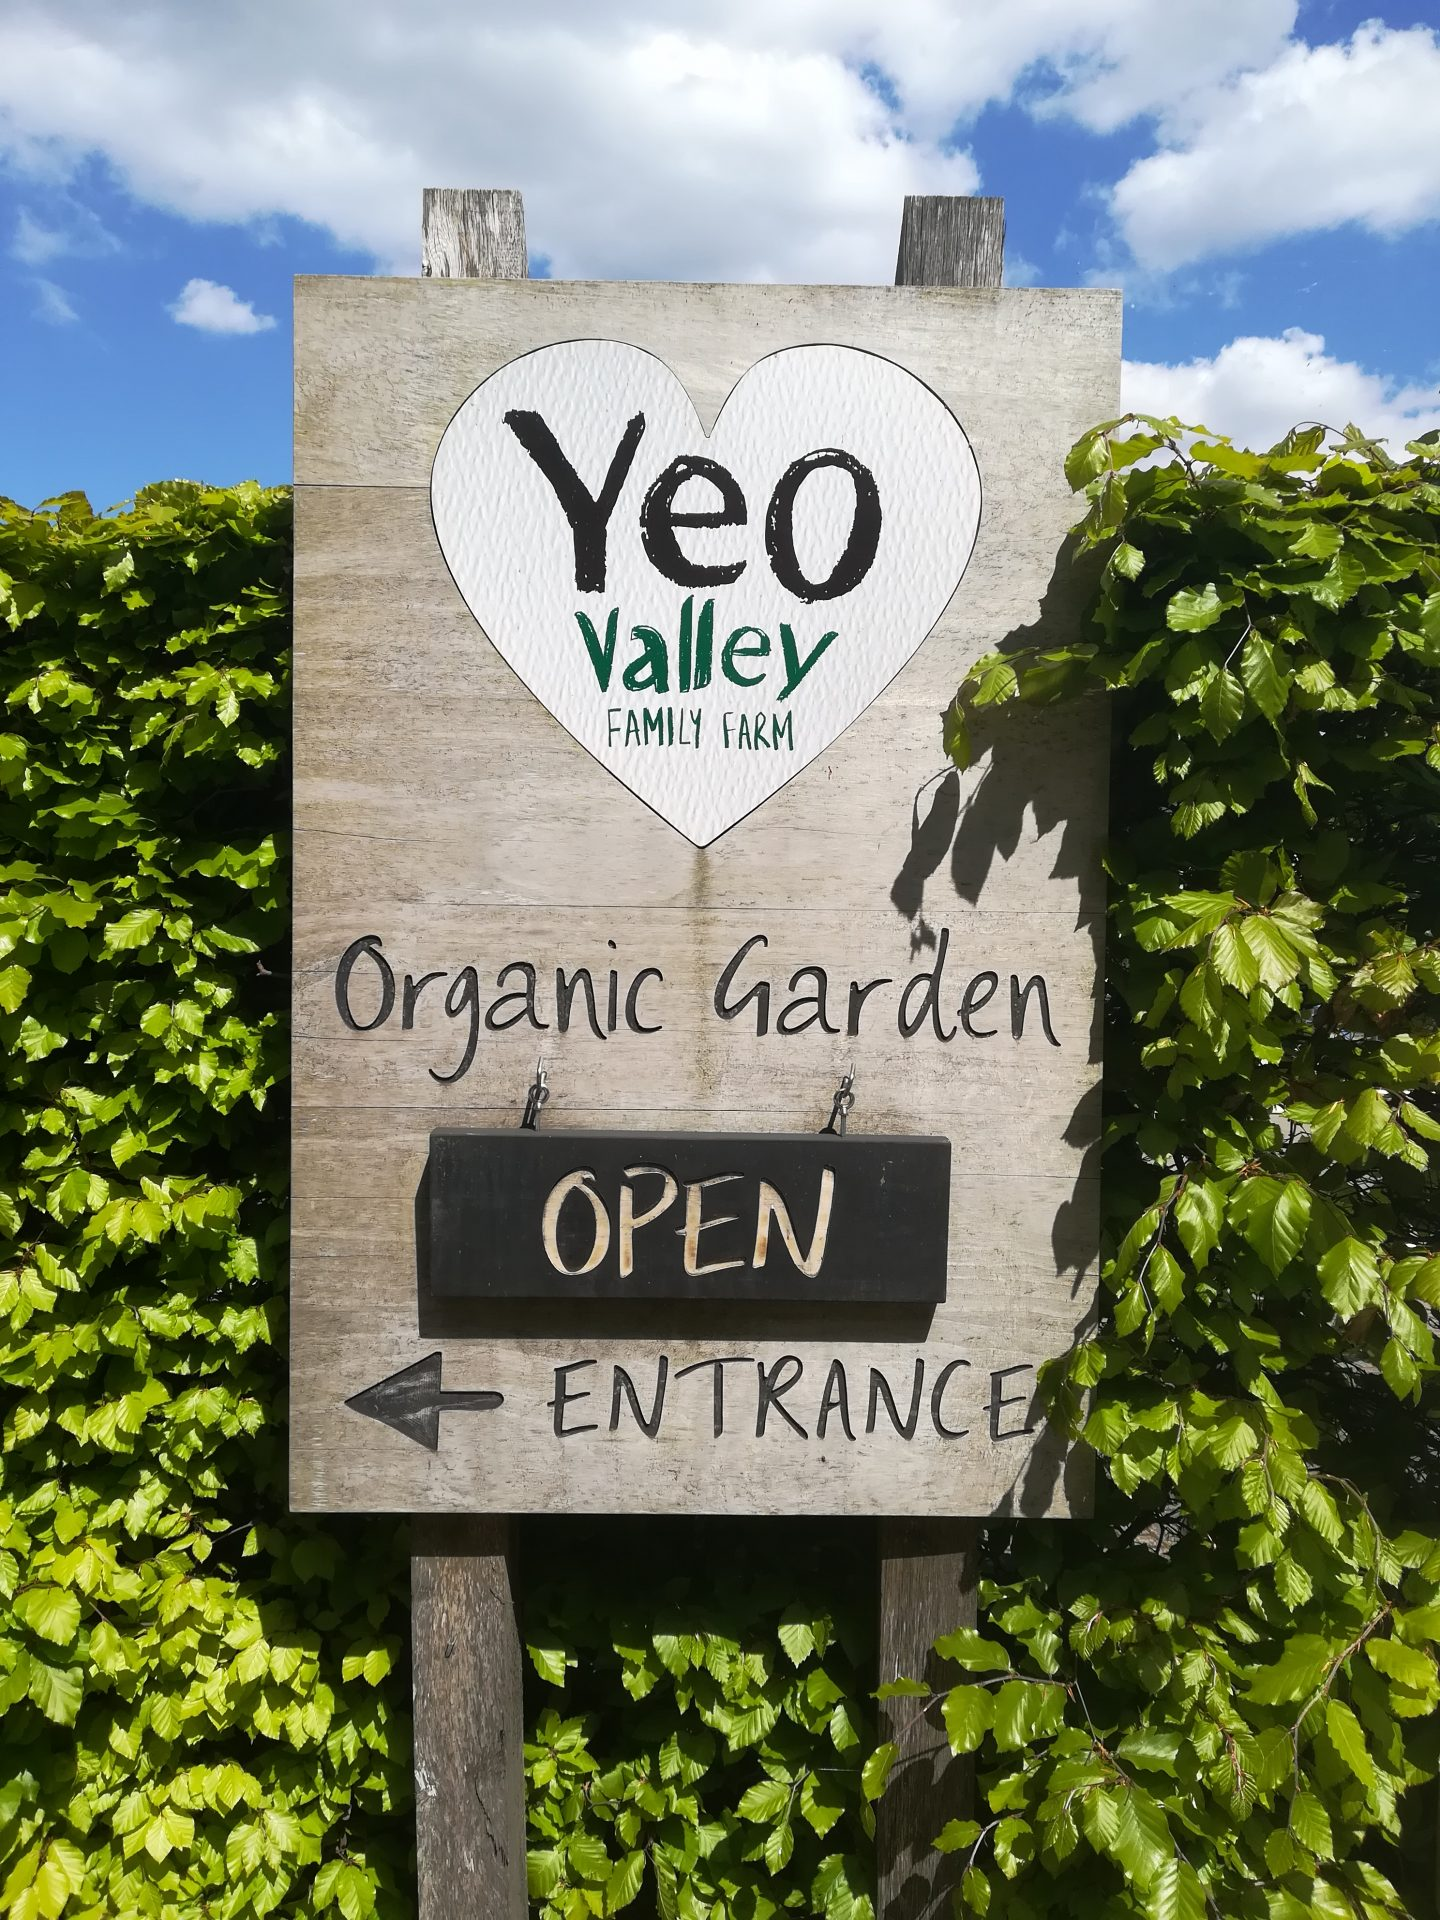 Open gate day at Yeo Valley